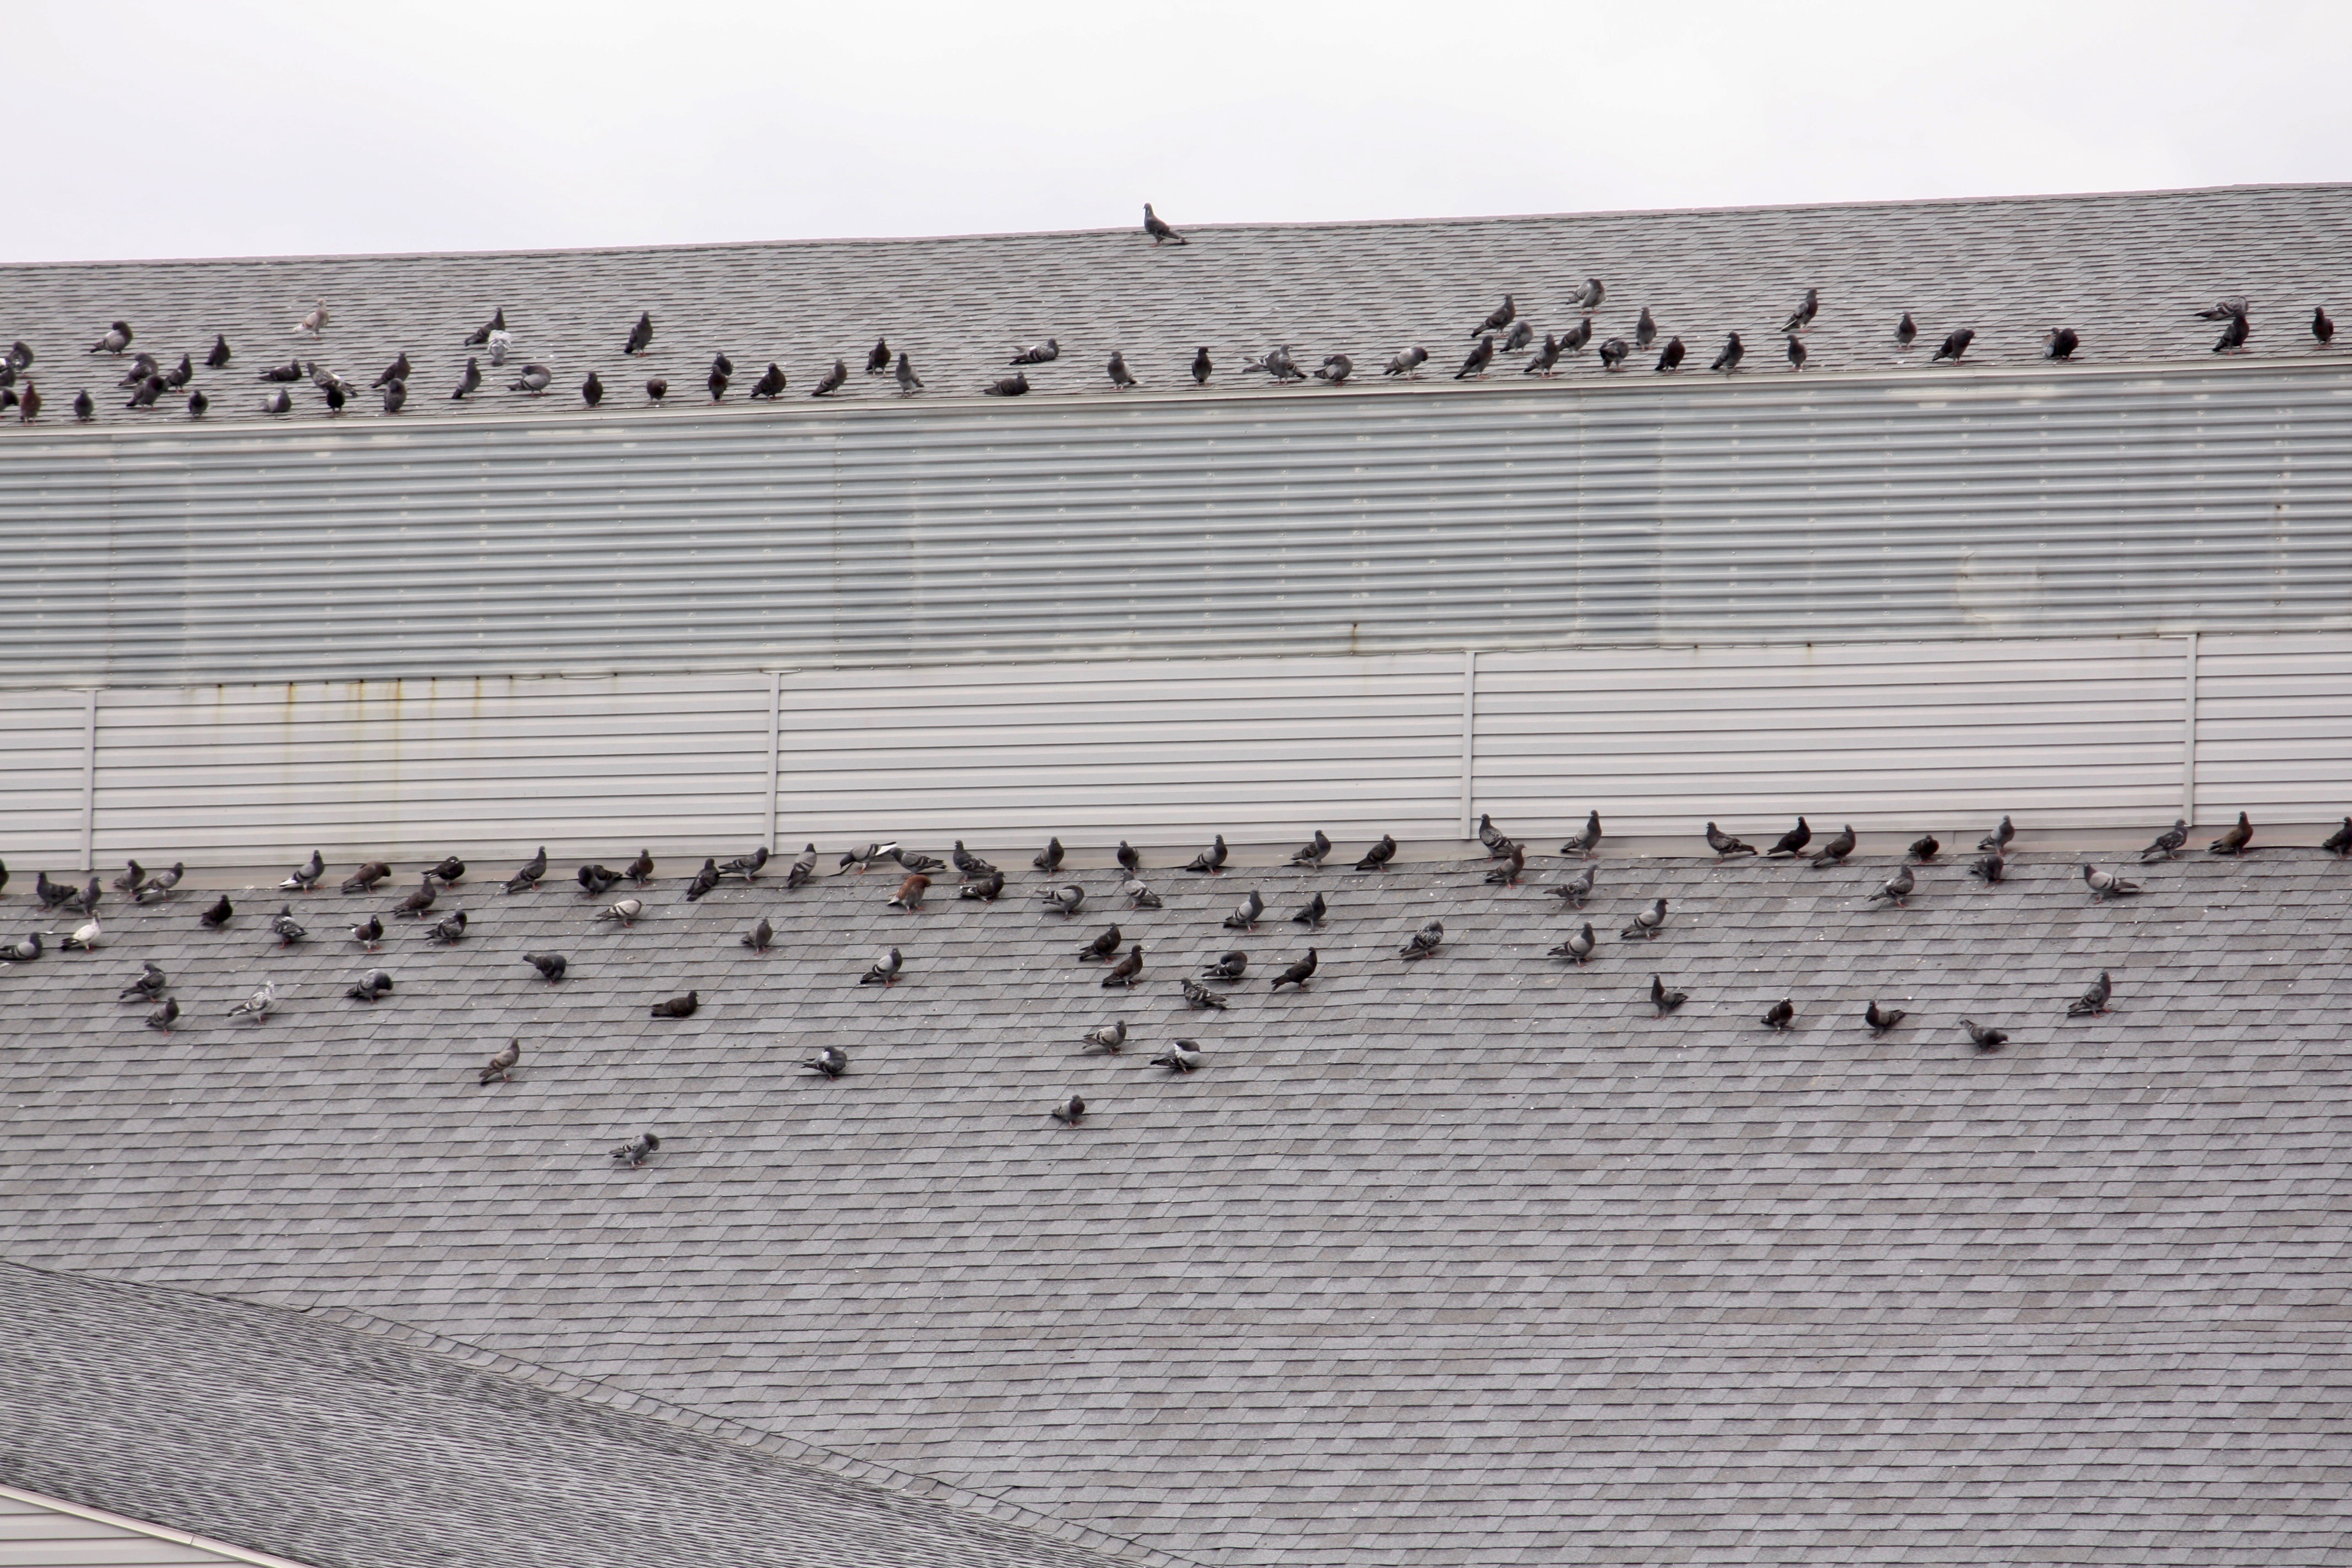 A better look at the pigeons on the roof of the ADM building.